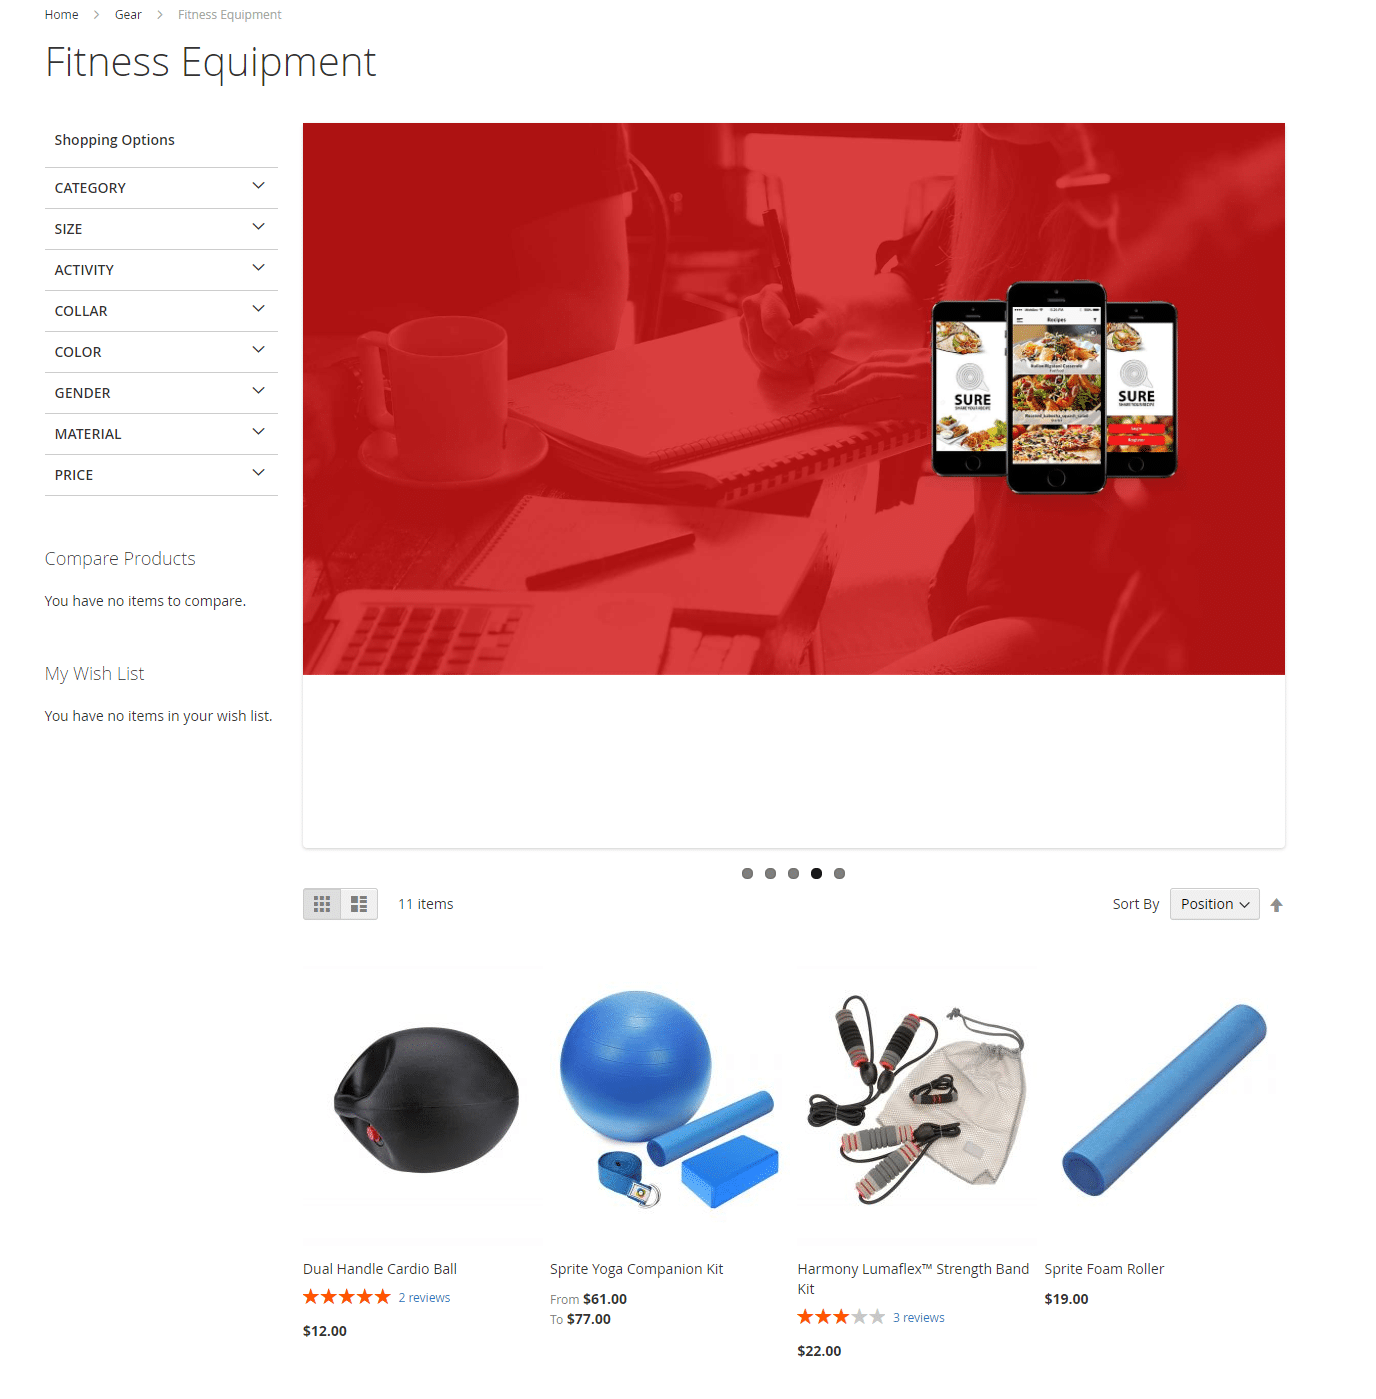 Free banner extension in magento - Free Magento 2 Slider Banner Extension